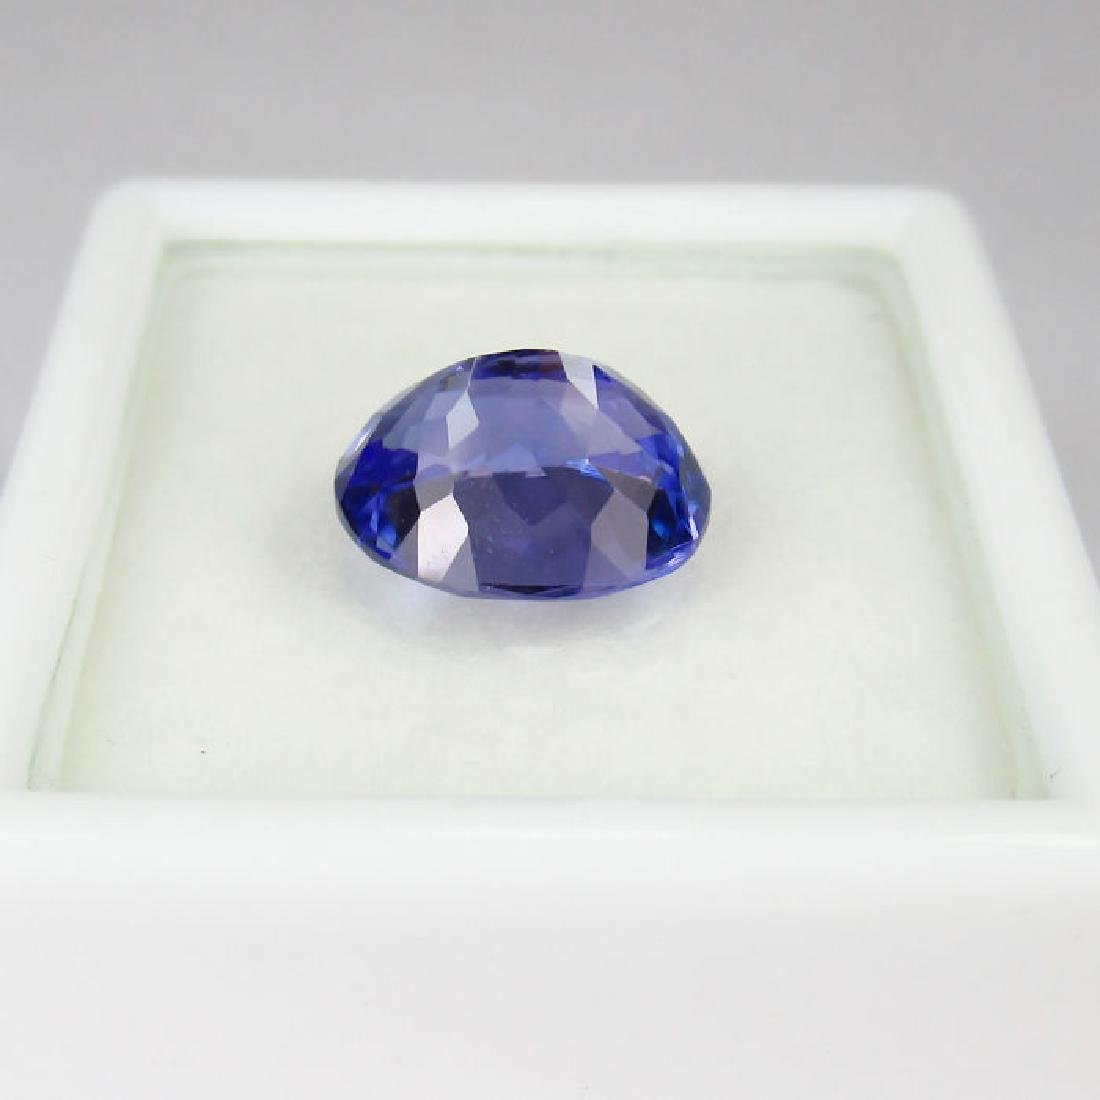 3.05 Ctw  IGI Certified Natural Loose Oval Tanzanite - 5